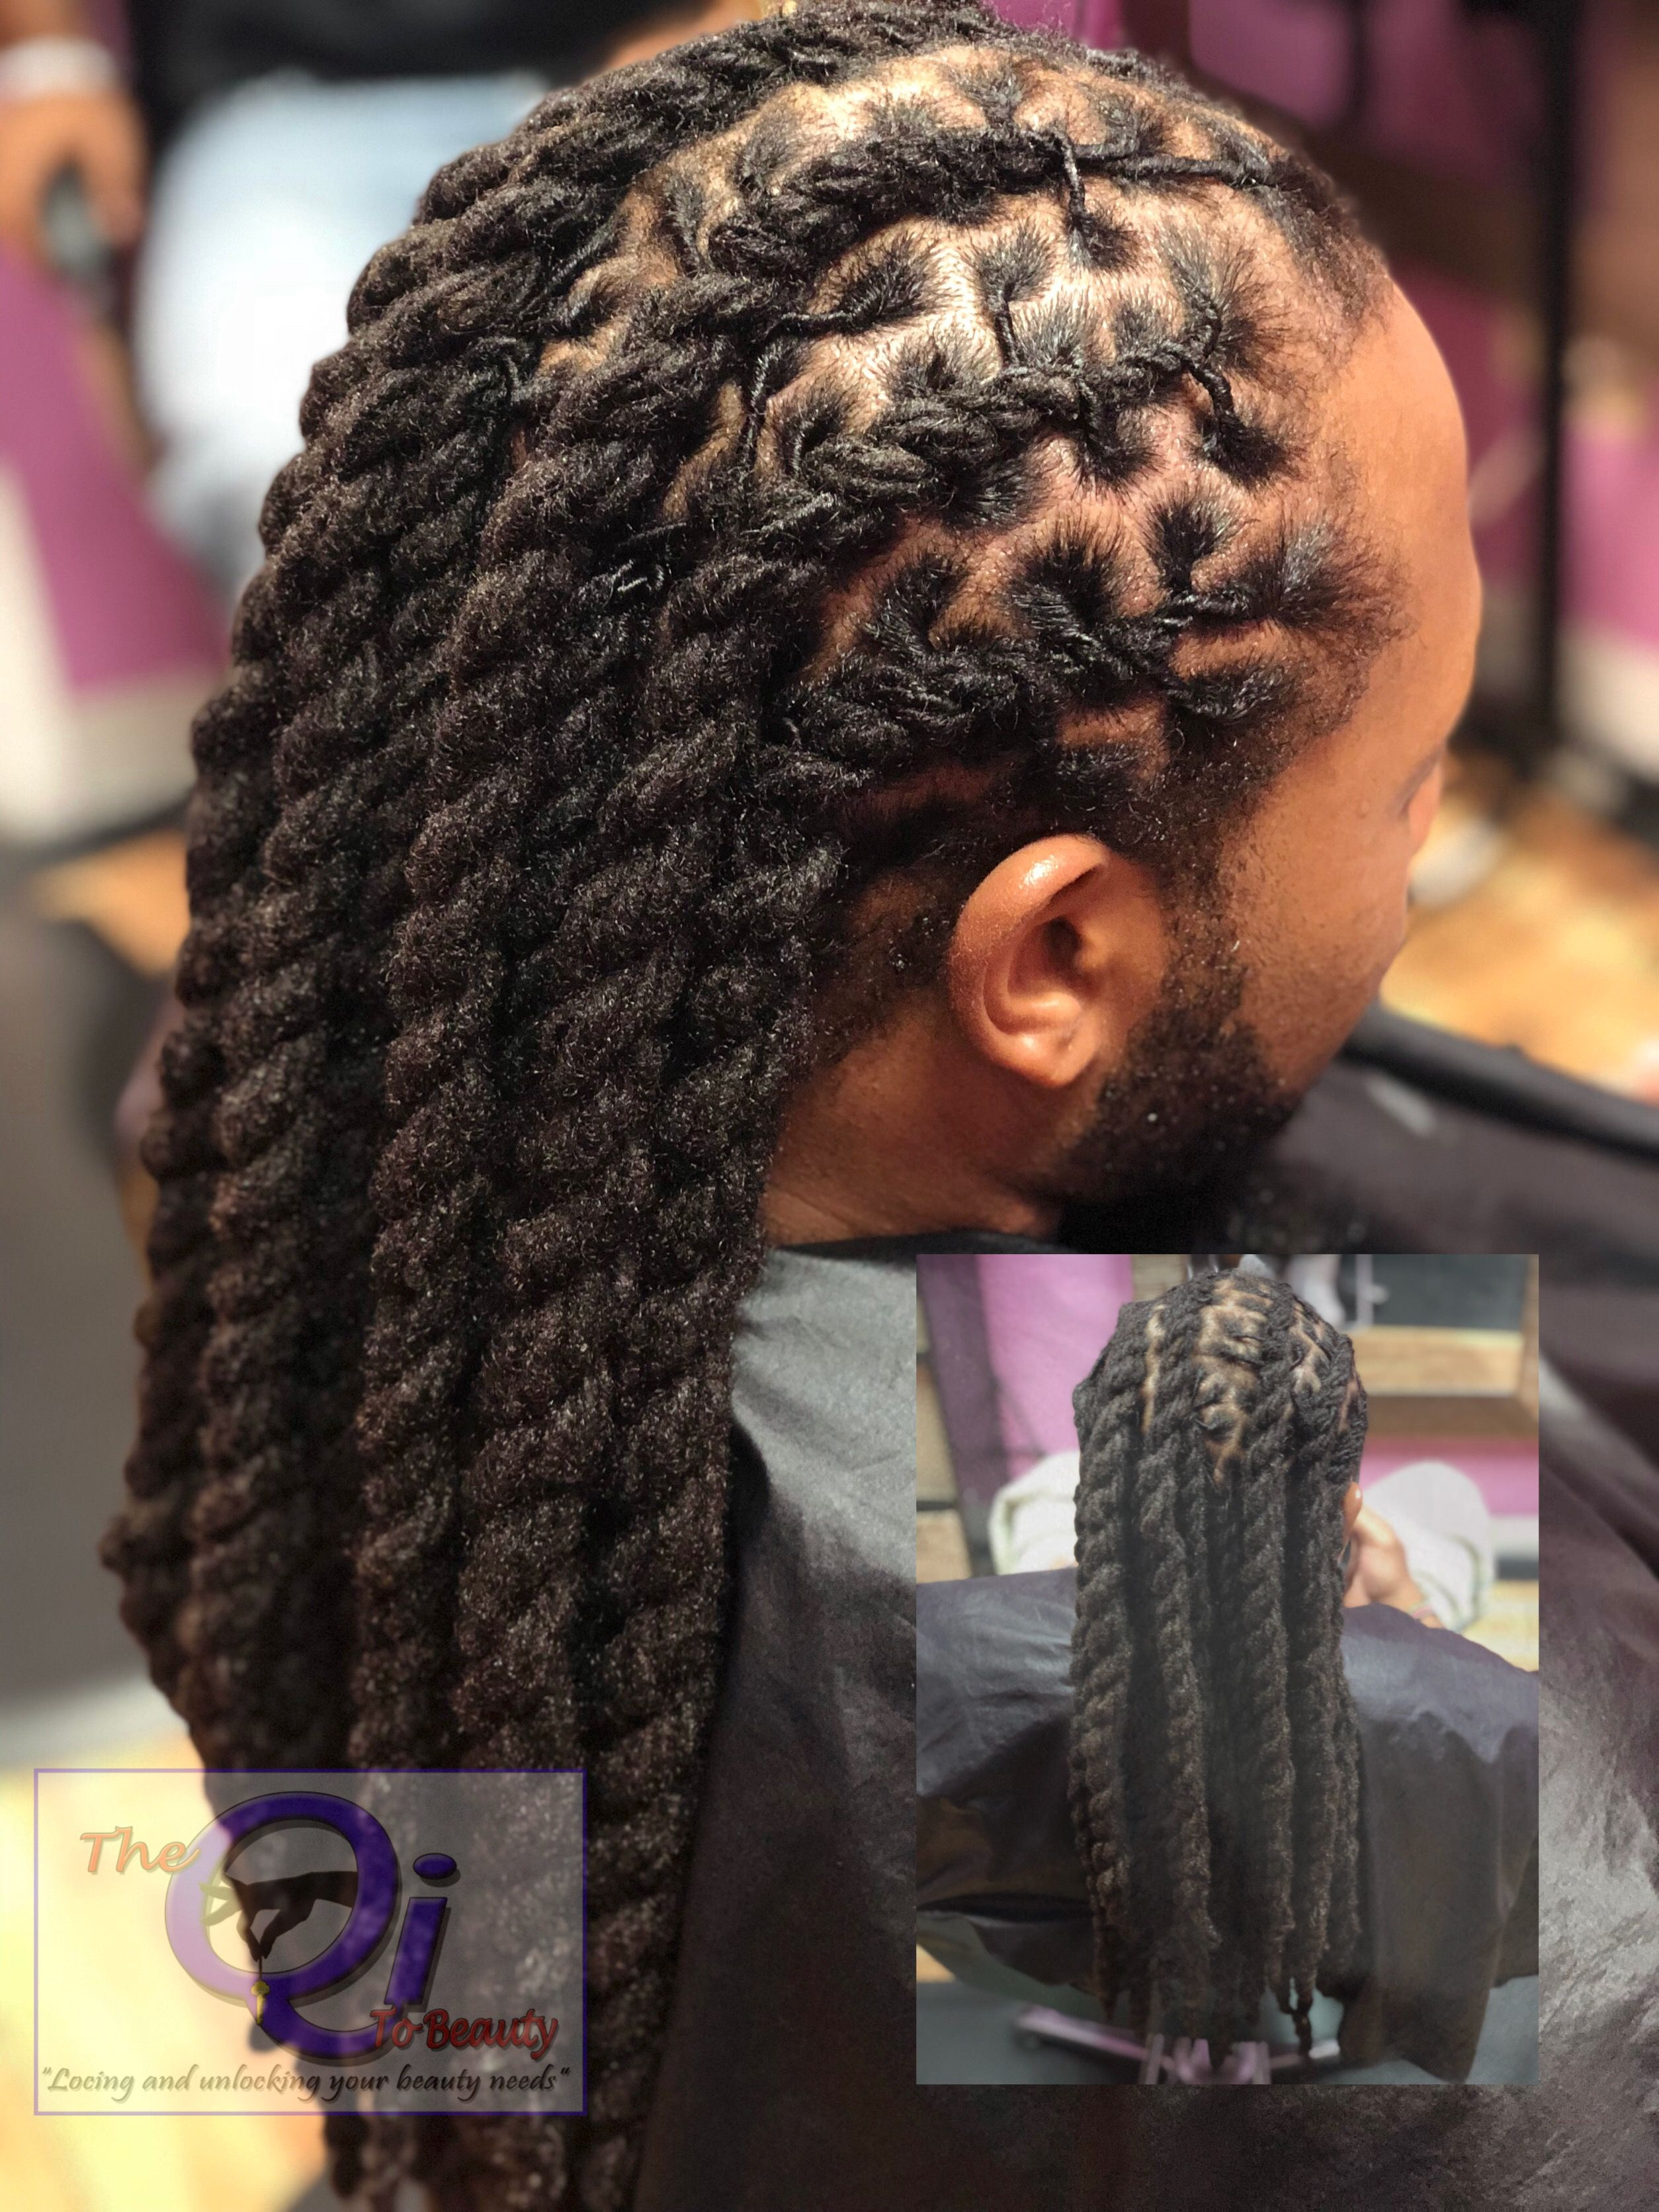 Dread Loc Styles Rope Braids Theqitobeauty Dreadlock Hairstyles For Men Dreadlock Styles Dread Hairstyles For Men